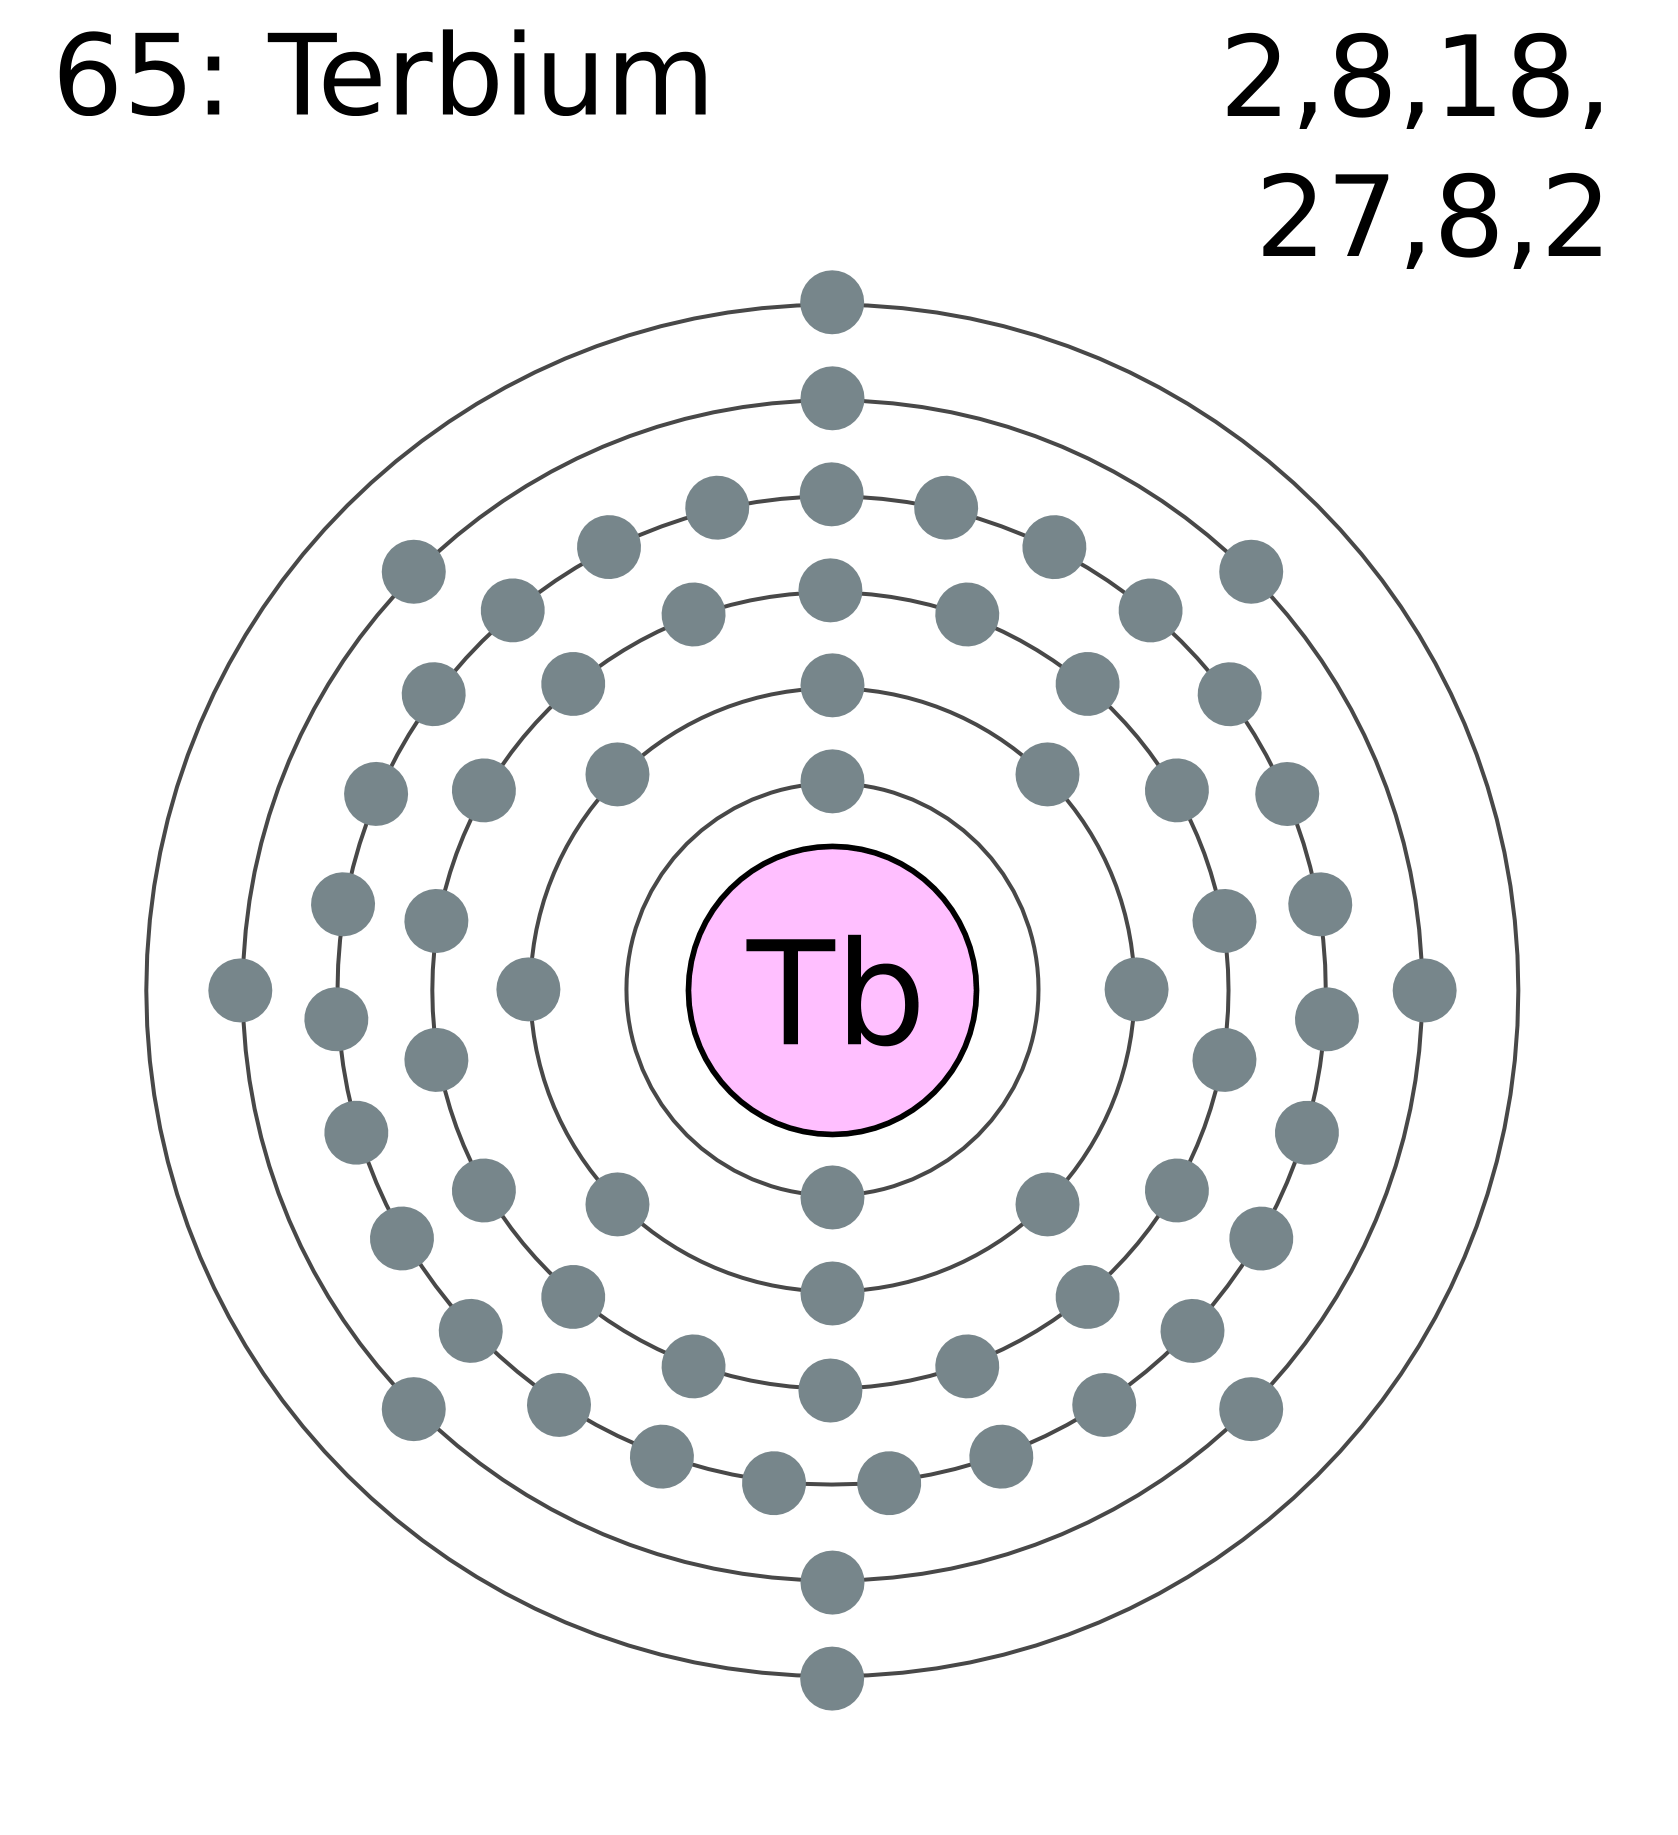 electron dot diagram of carbon draw an orbital for scandium element on the periodic table free